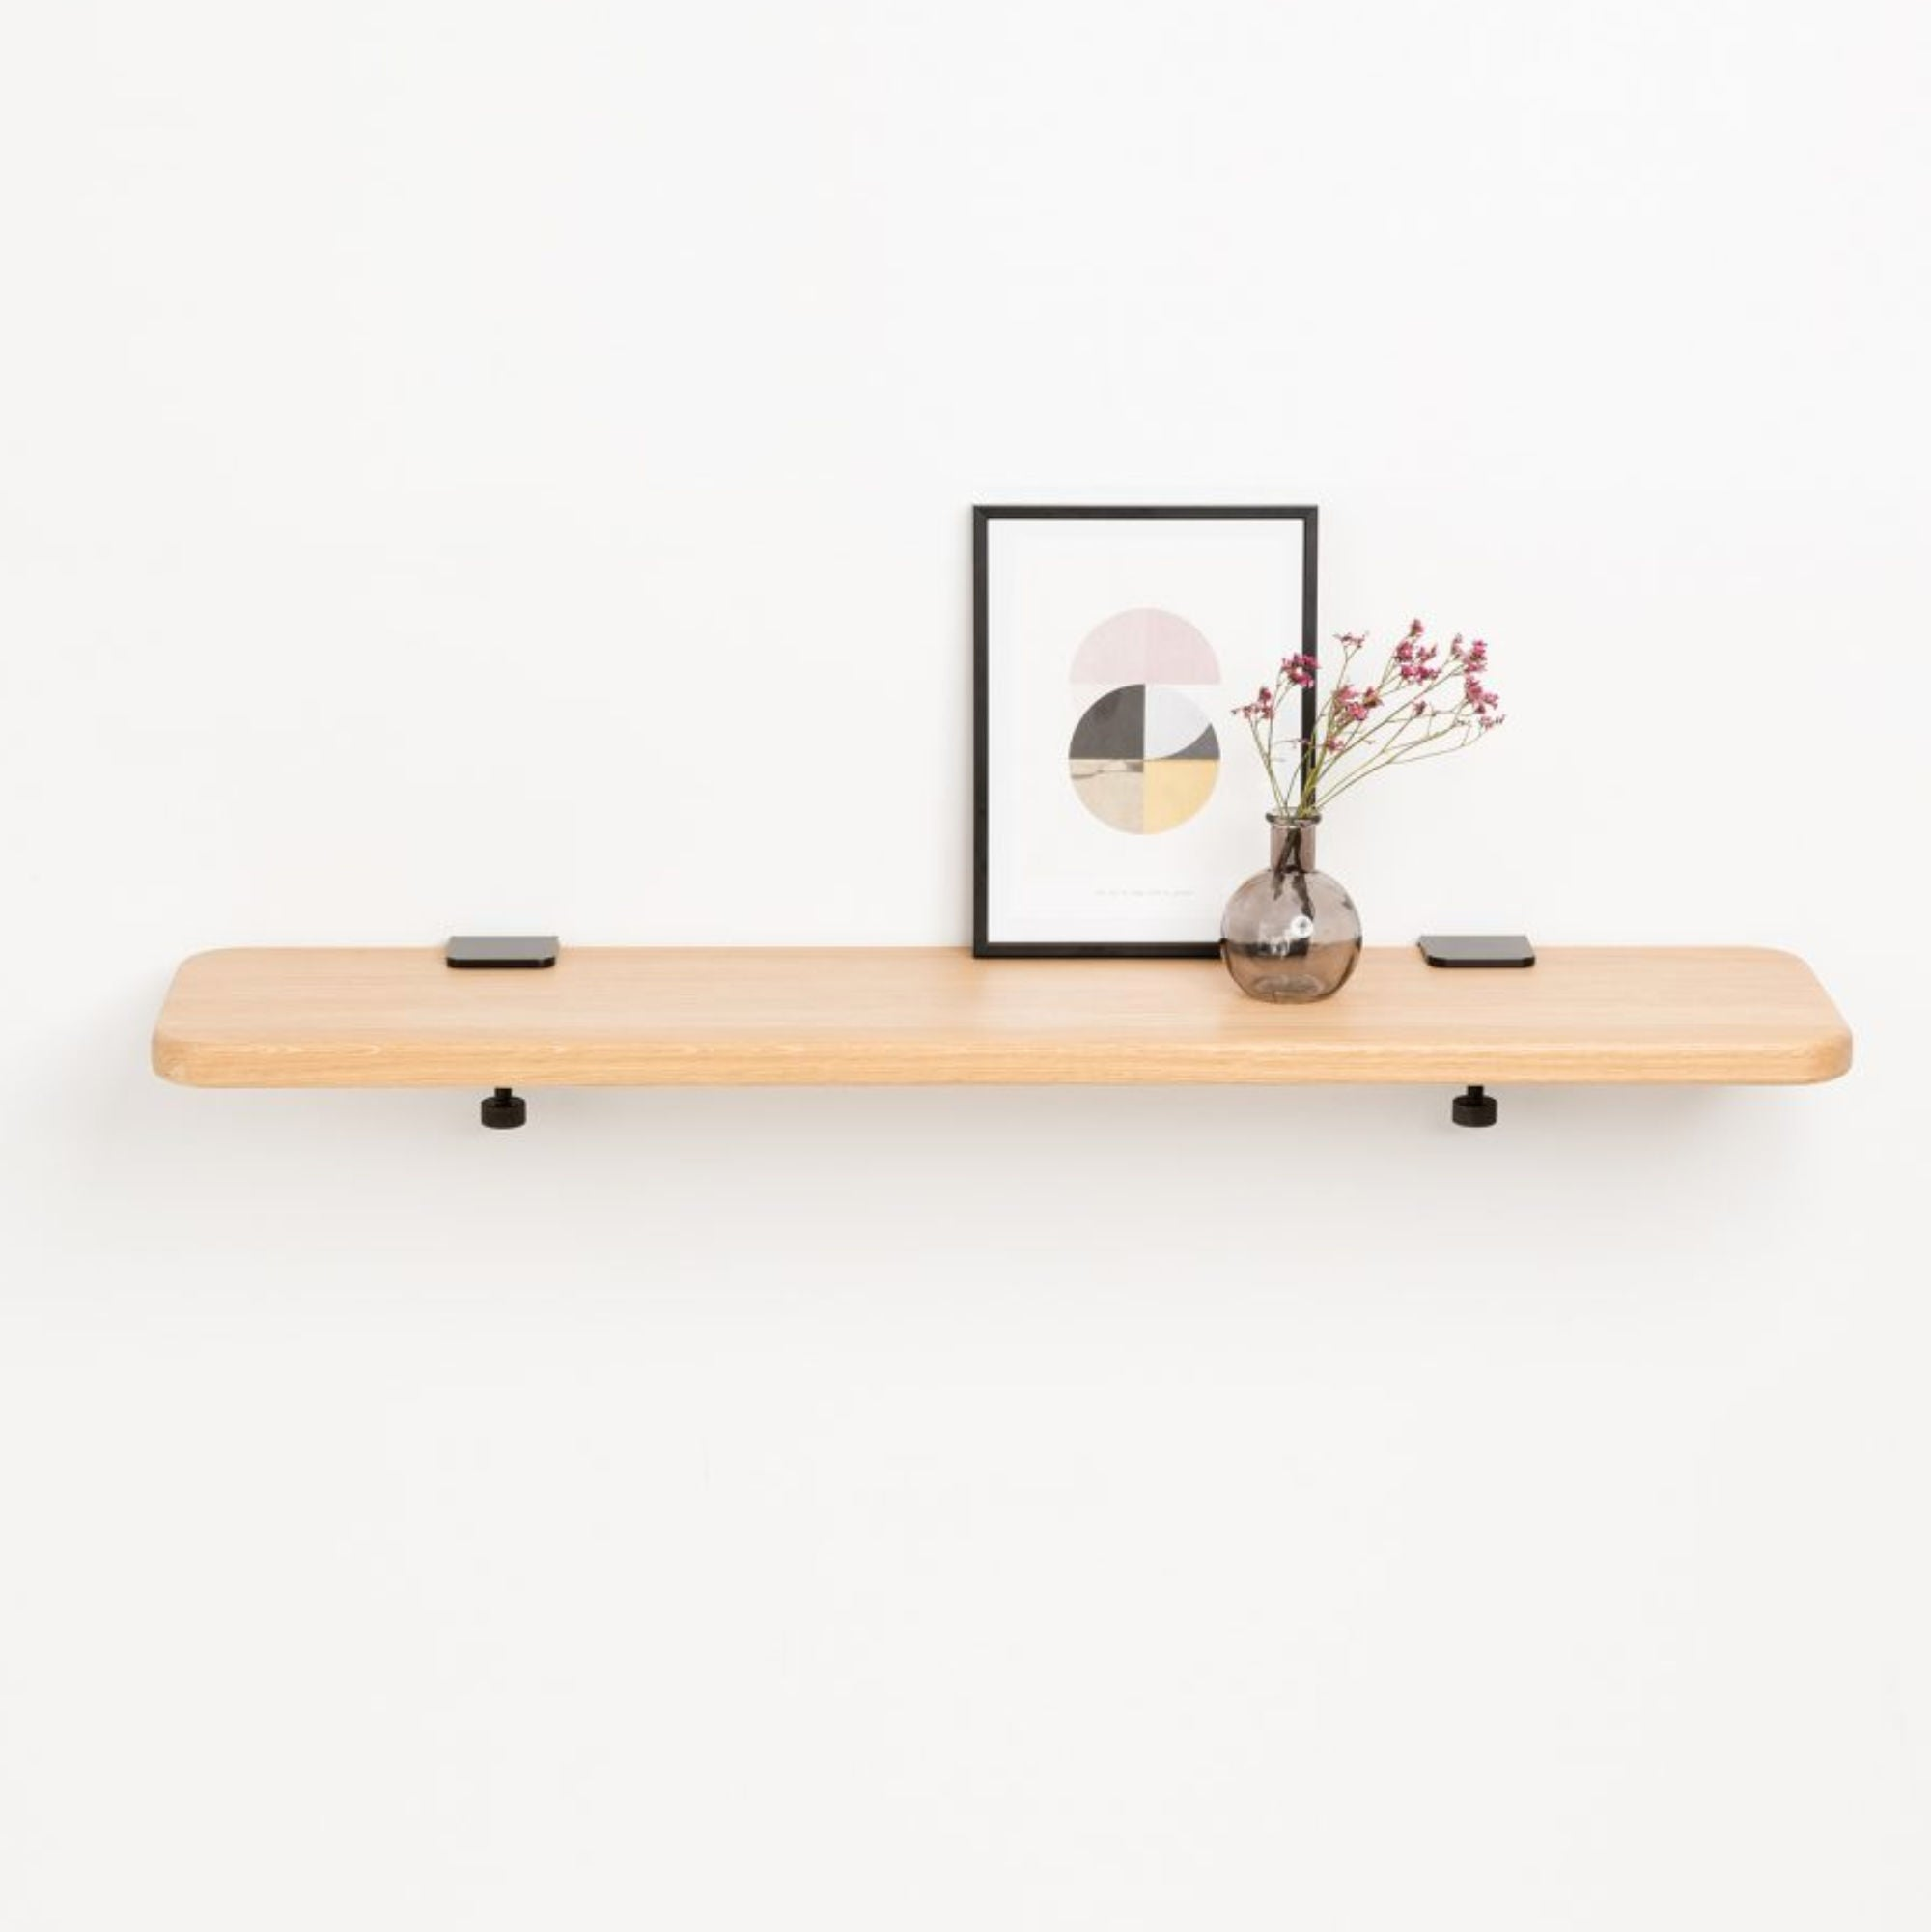 Tiptop Solid oak shelf, 45 * 20cm